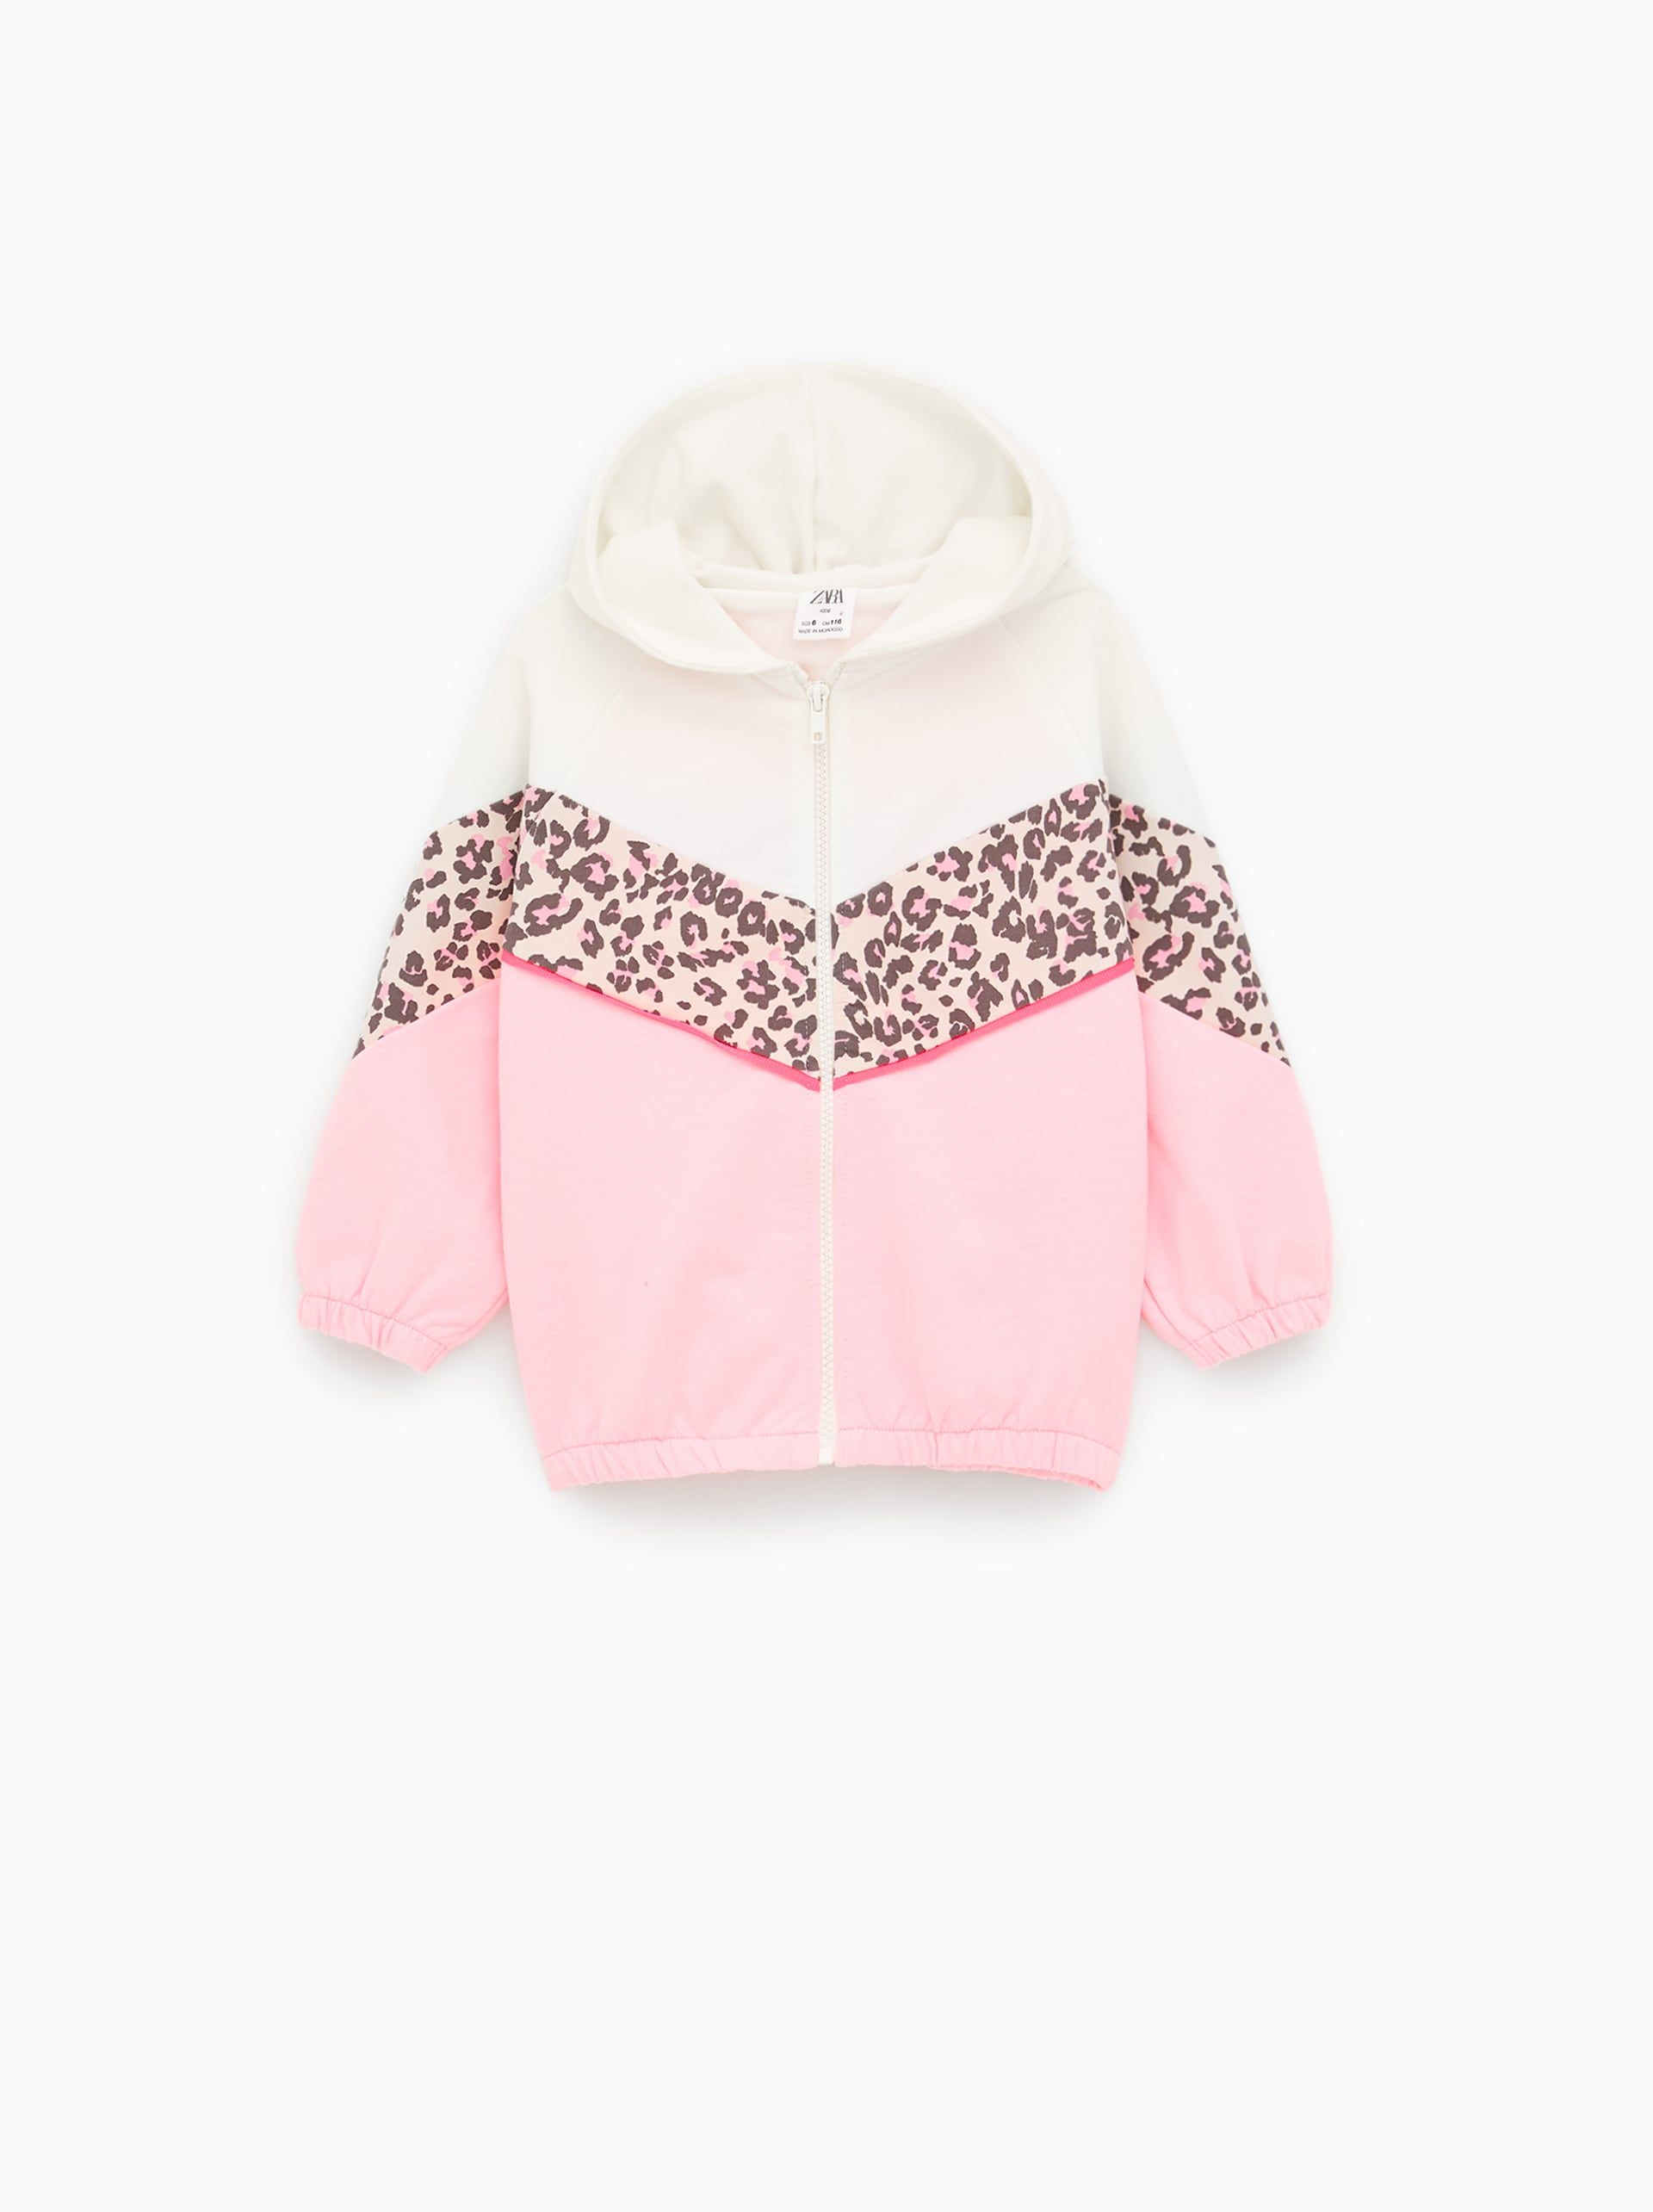 Girls Sweatshirts New Collection Online Zara United States Modestil Zara Mode Zara